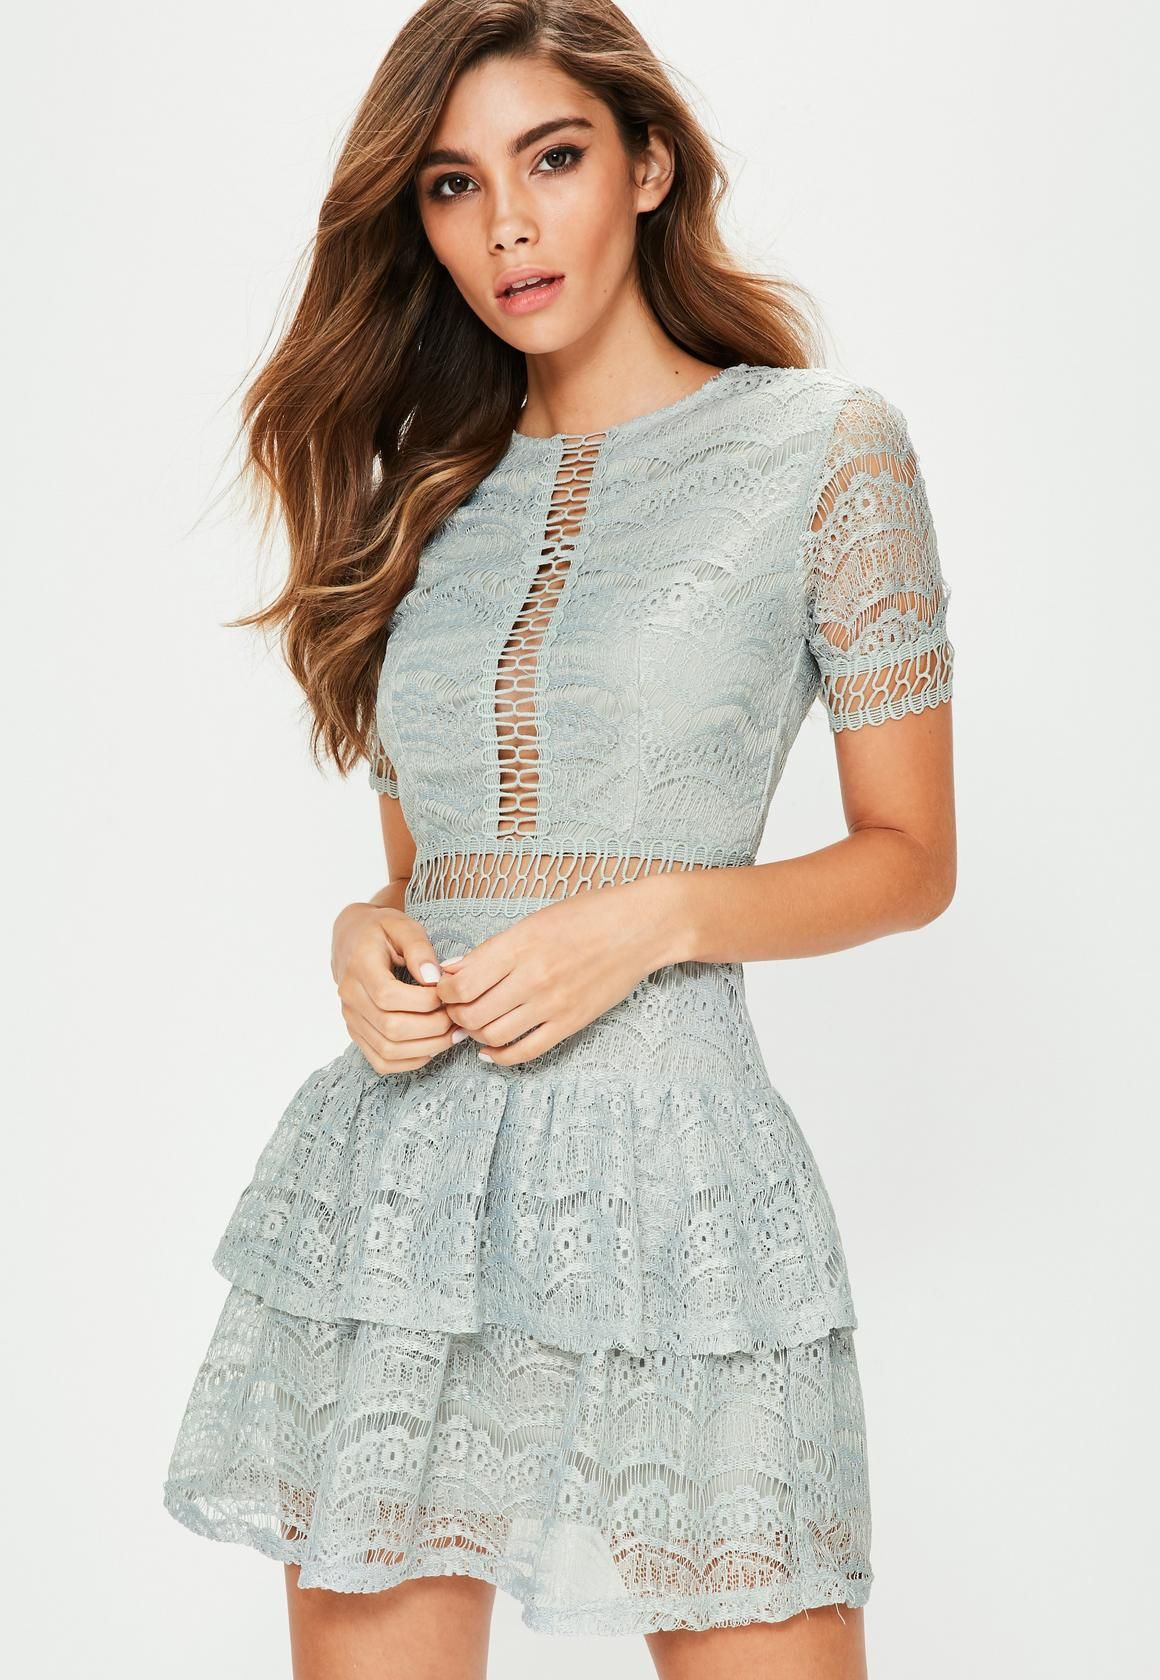 Missguided - Grey Lace ladder Trim Ruffle Hem Dress